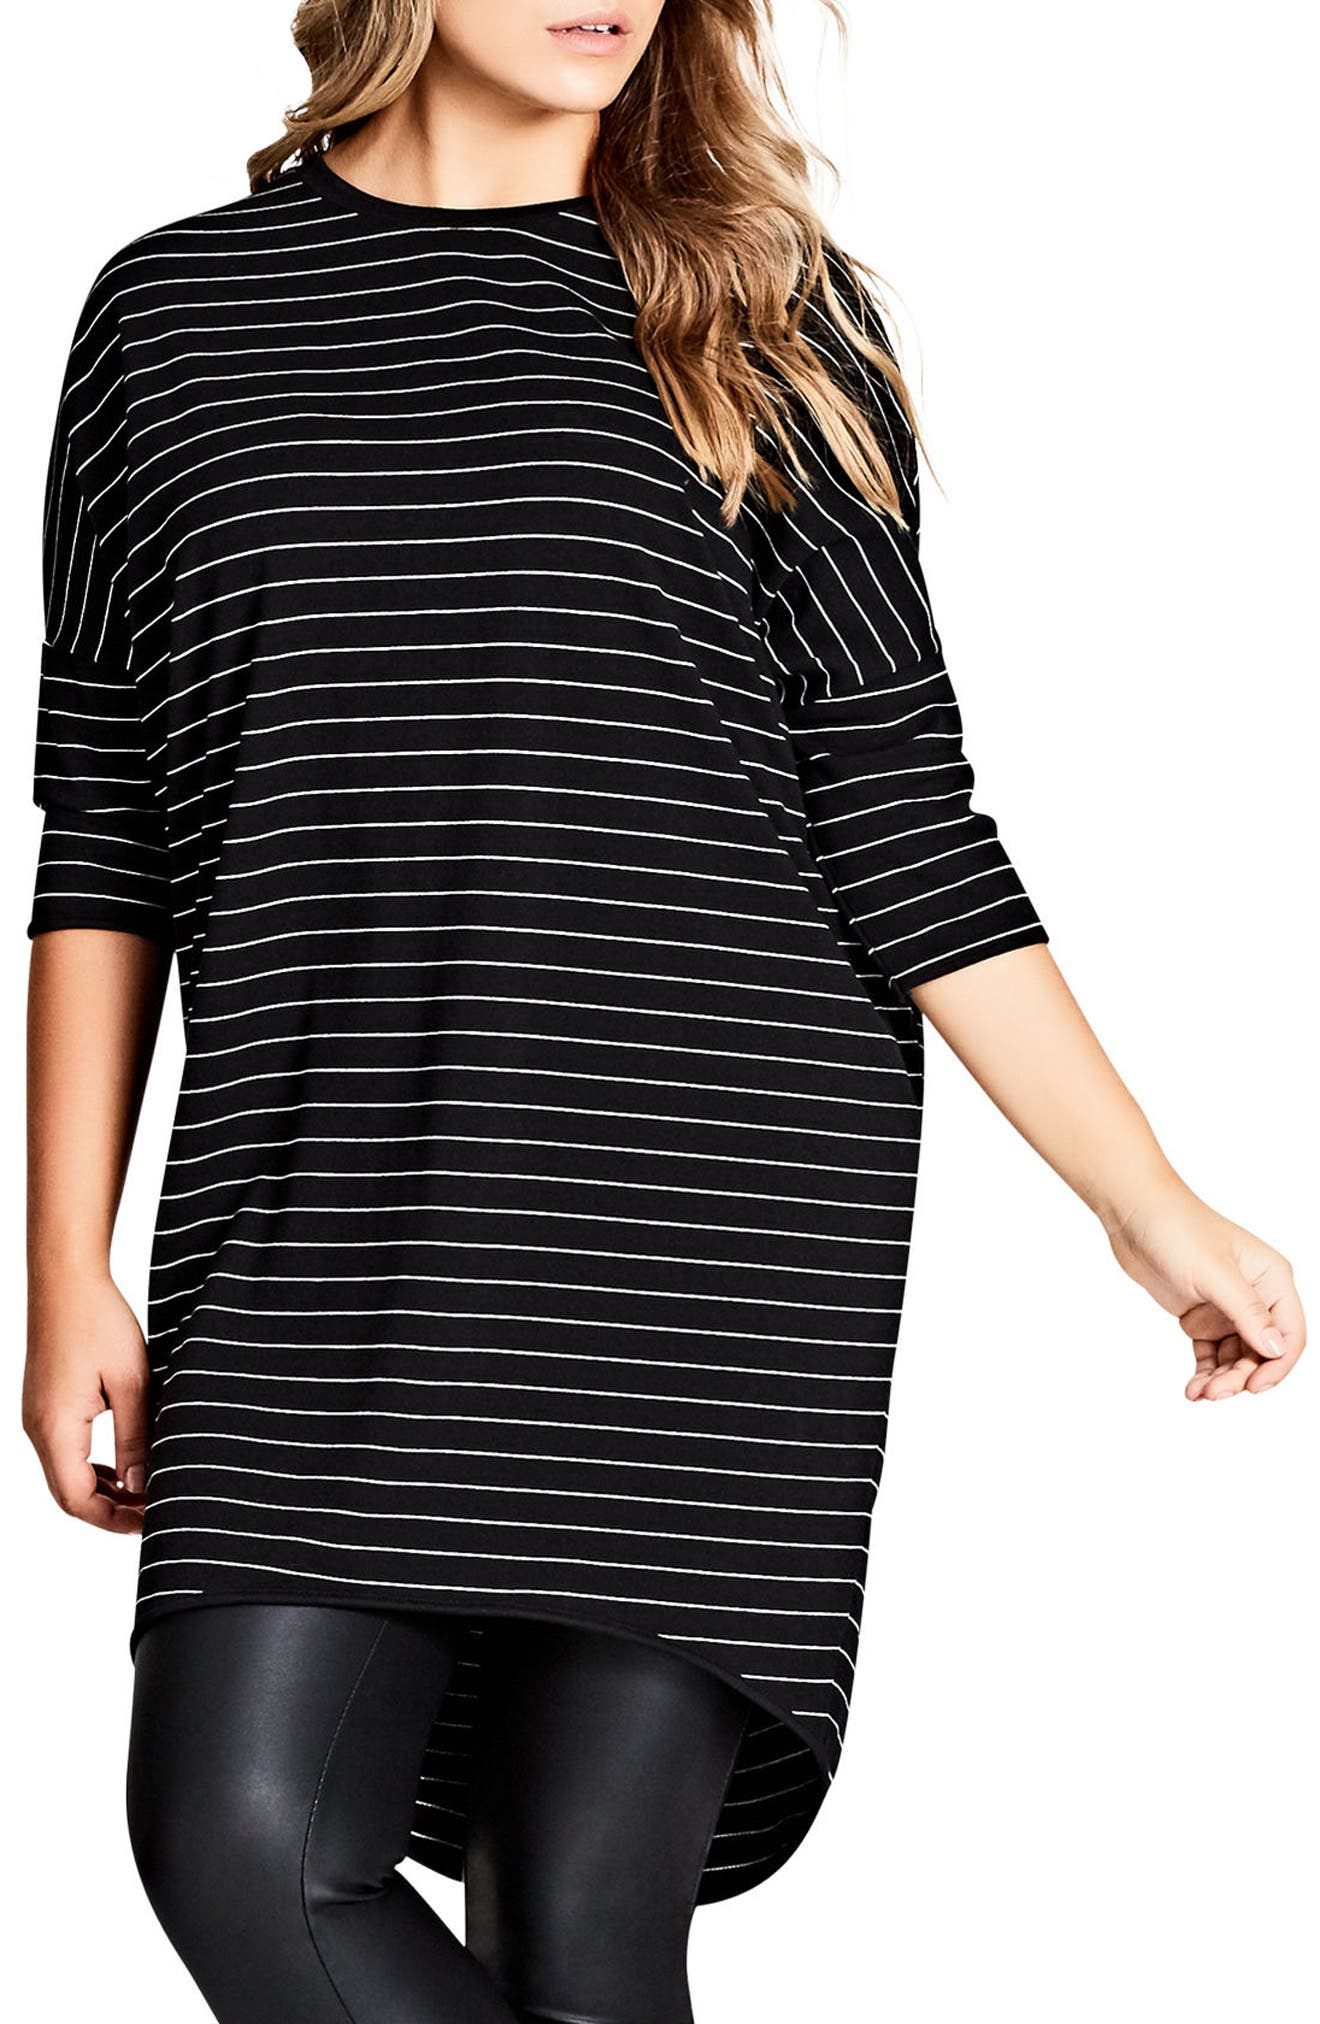 City Chic Stripe Oversize Tee (Plus Size)